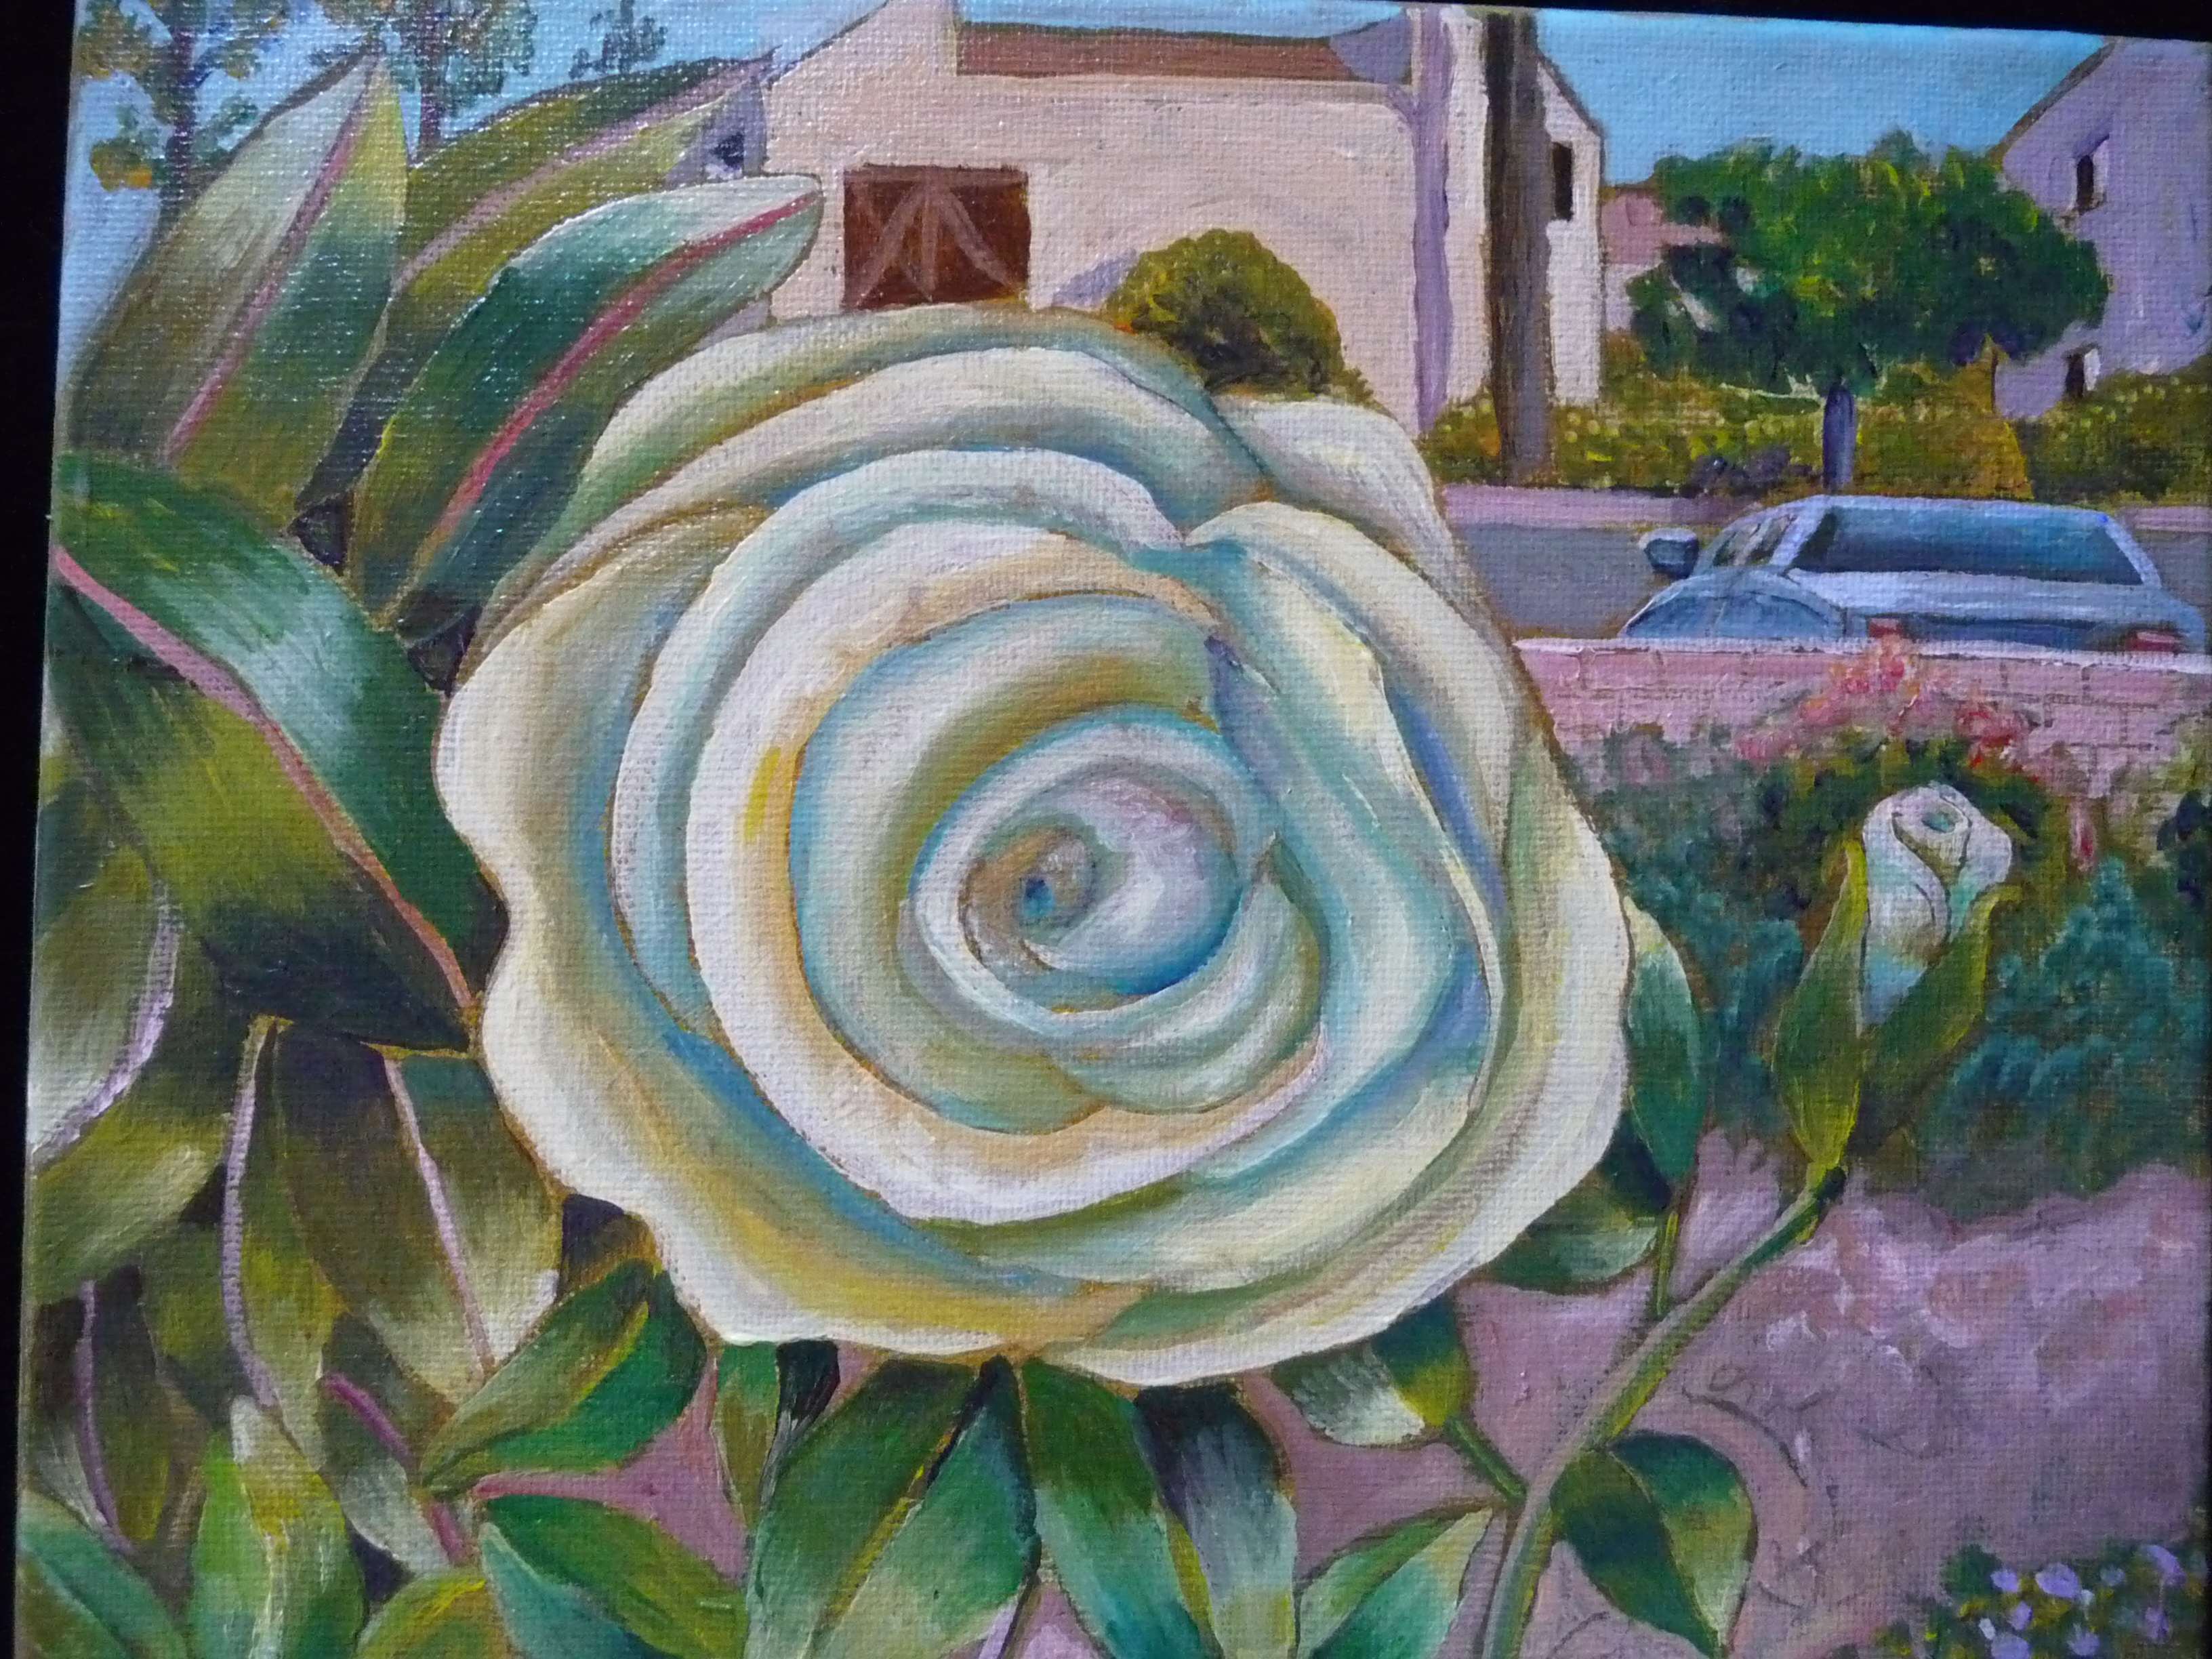 Kathy Breaux - White Rose, 2019